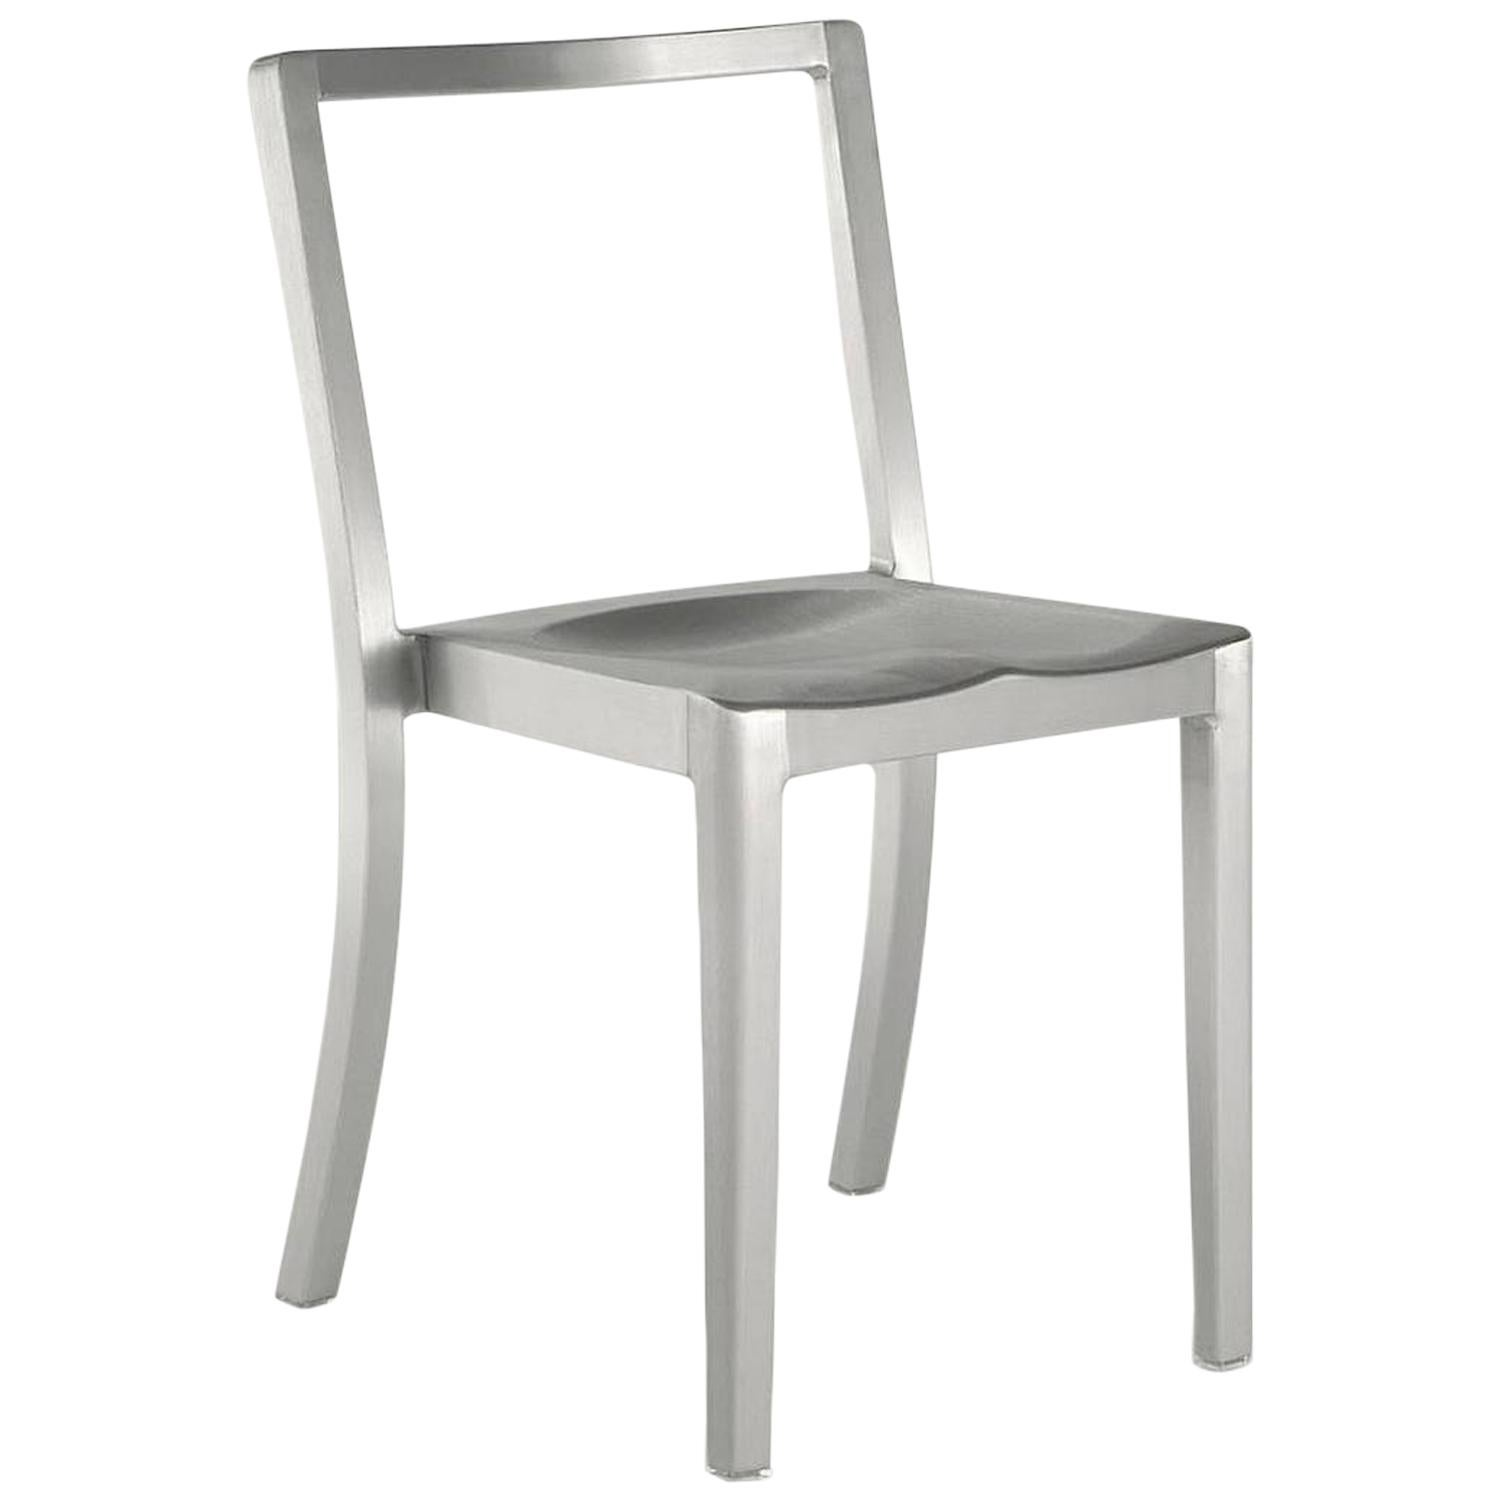 Emeco Icon Chair in Brushed Aluminum by Philippe Starck